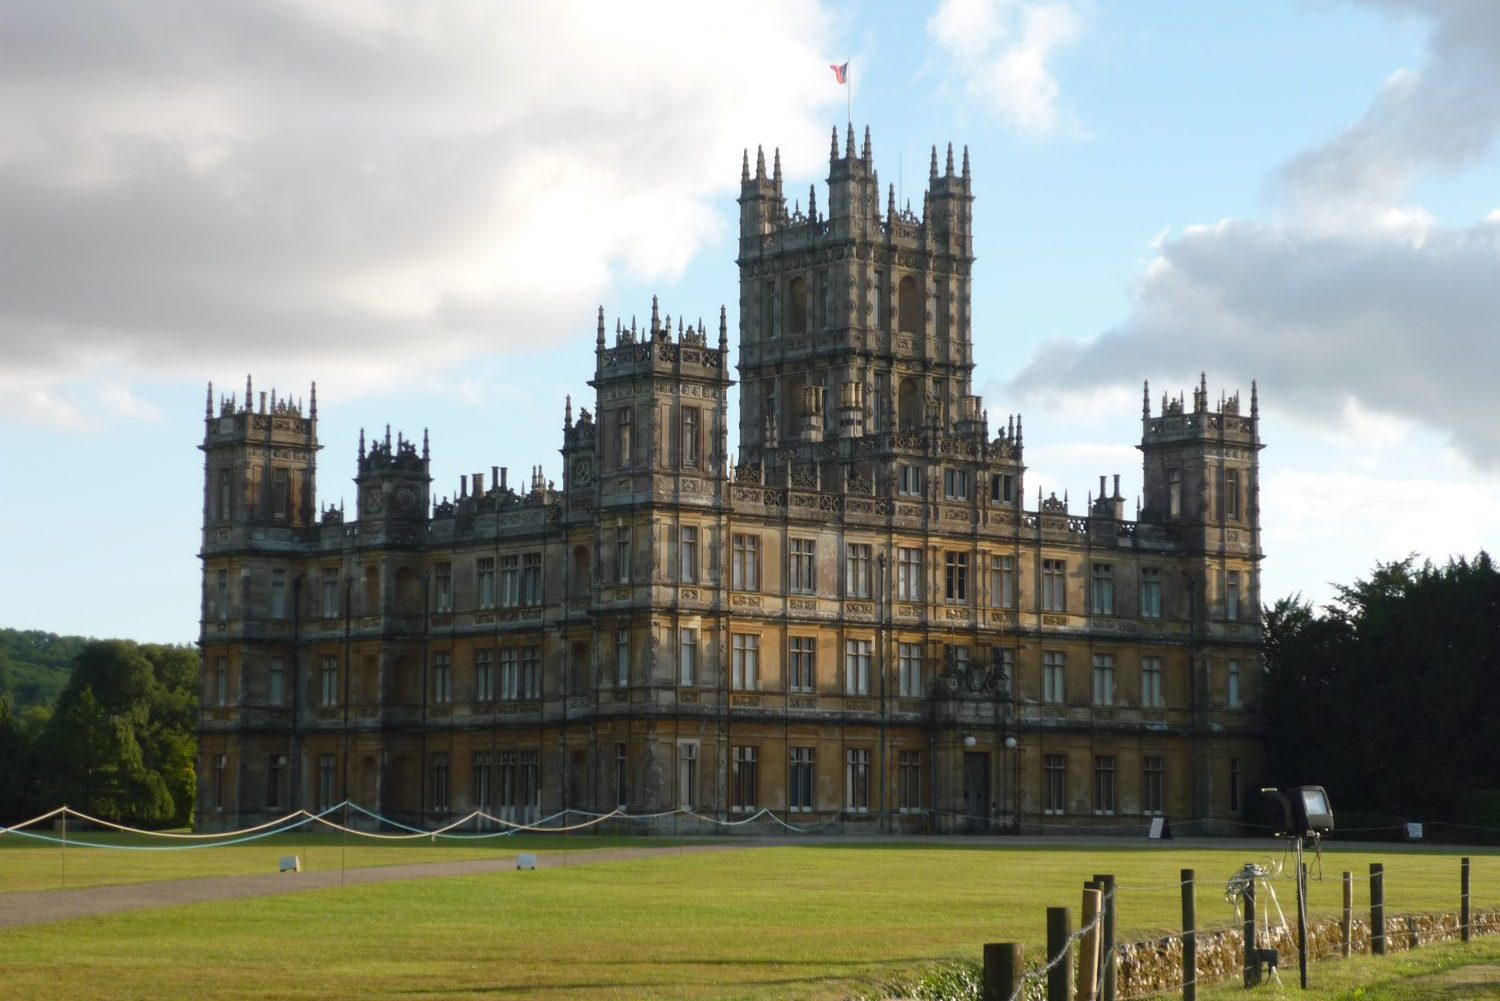 The exterior of Highclere Castle in north Hampshire